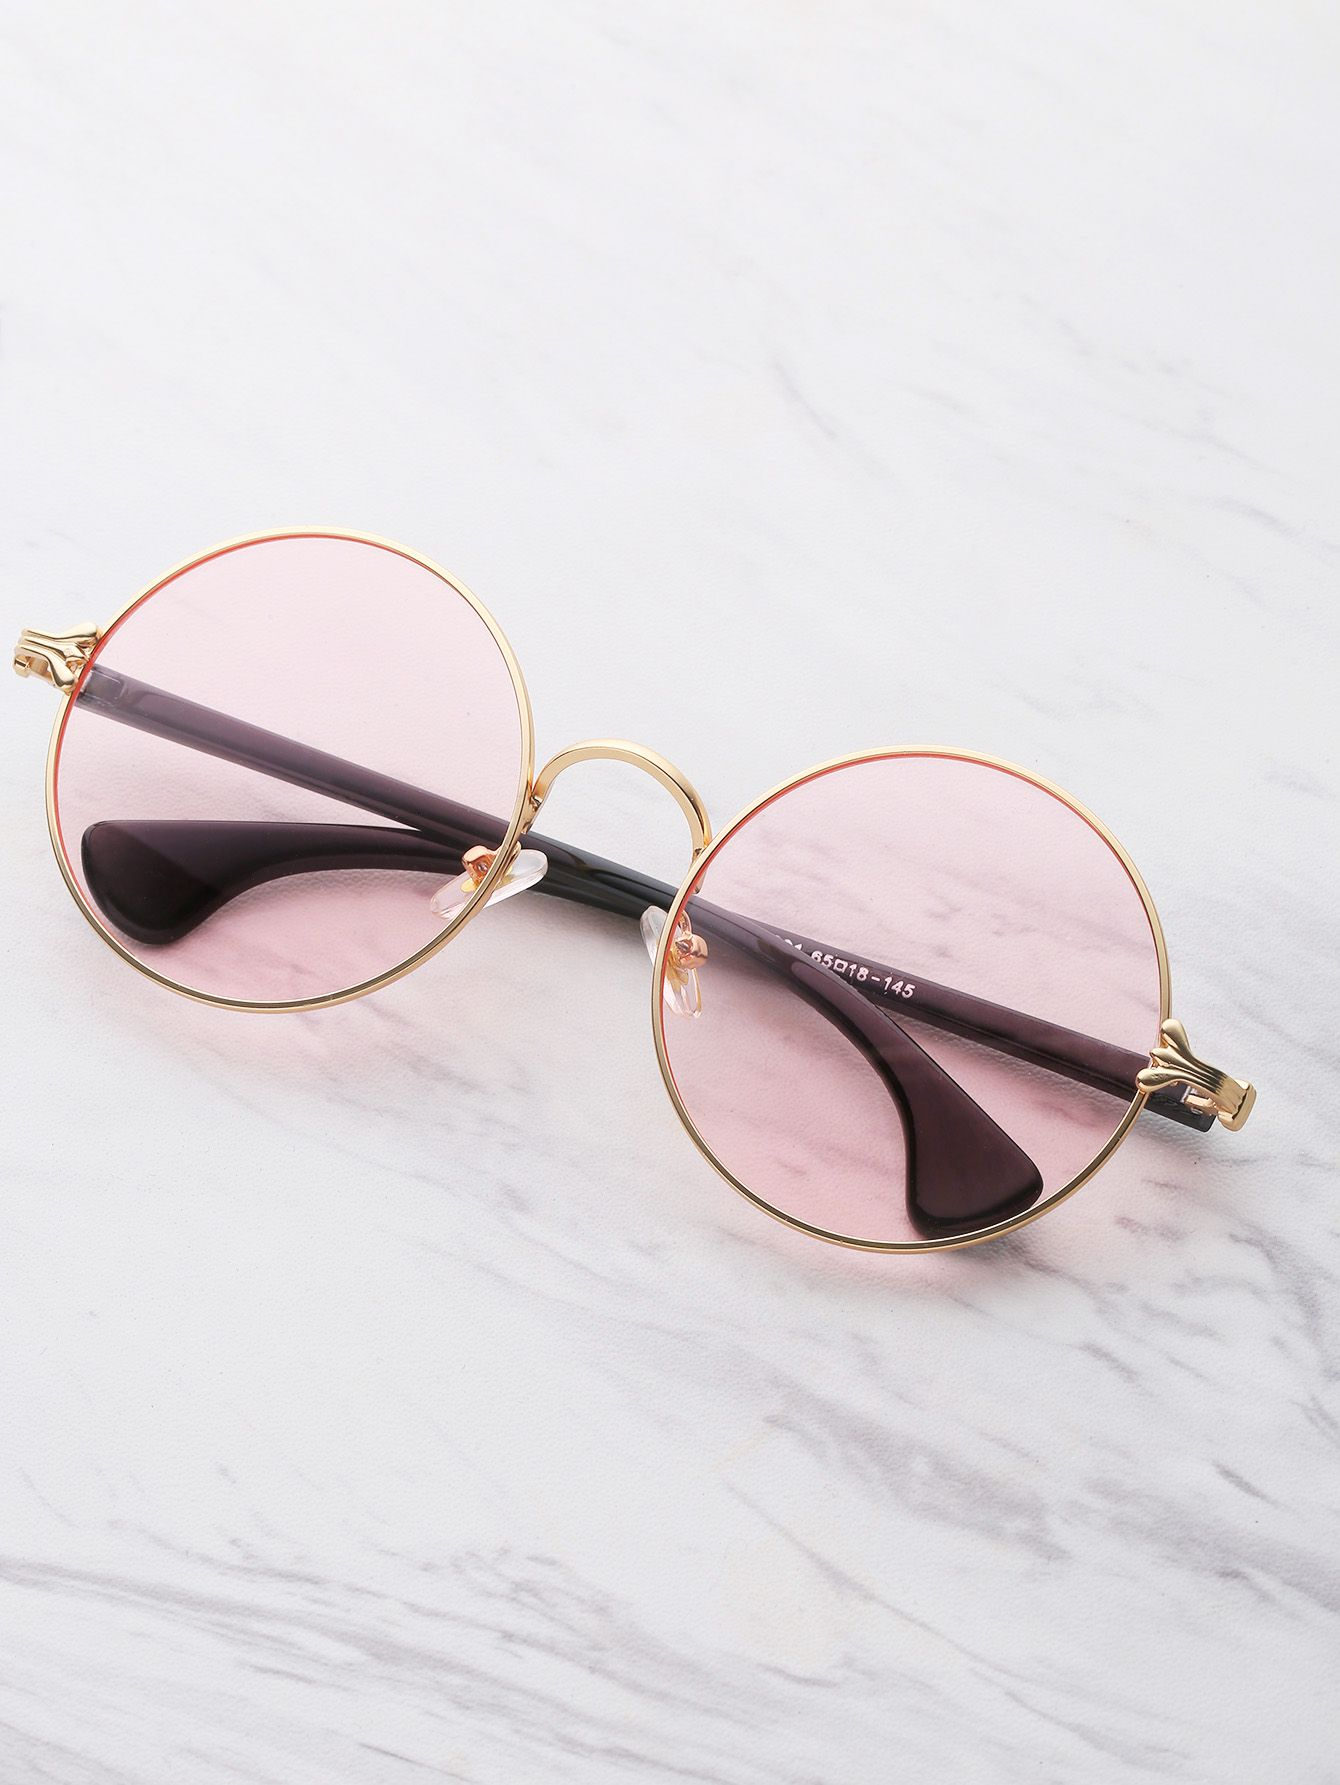 e9a97de57b Shop Two Tone Frame Round Sunglasses online. SheIn offers Two Tone Frame  Round Sunglasses & more to fit your fashionable needs.